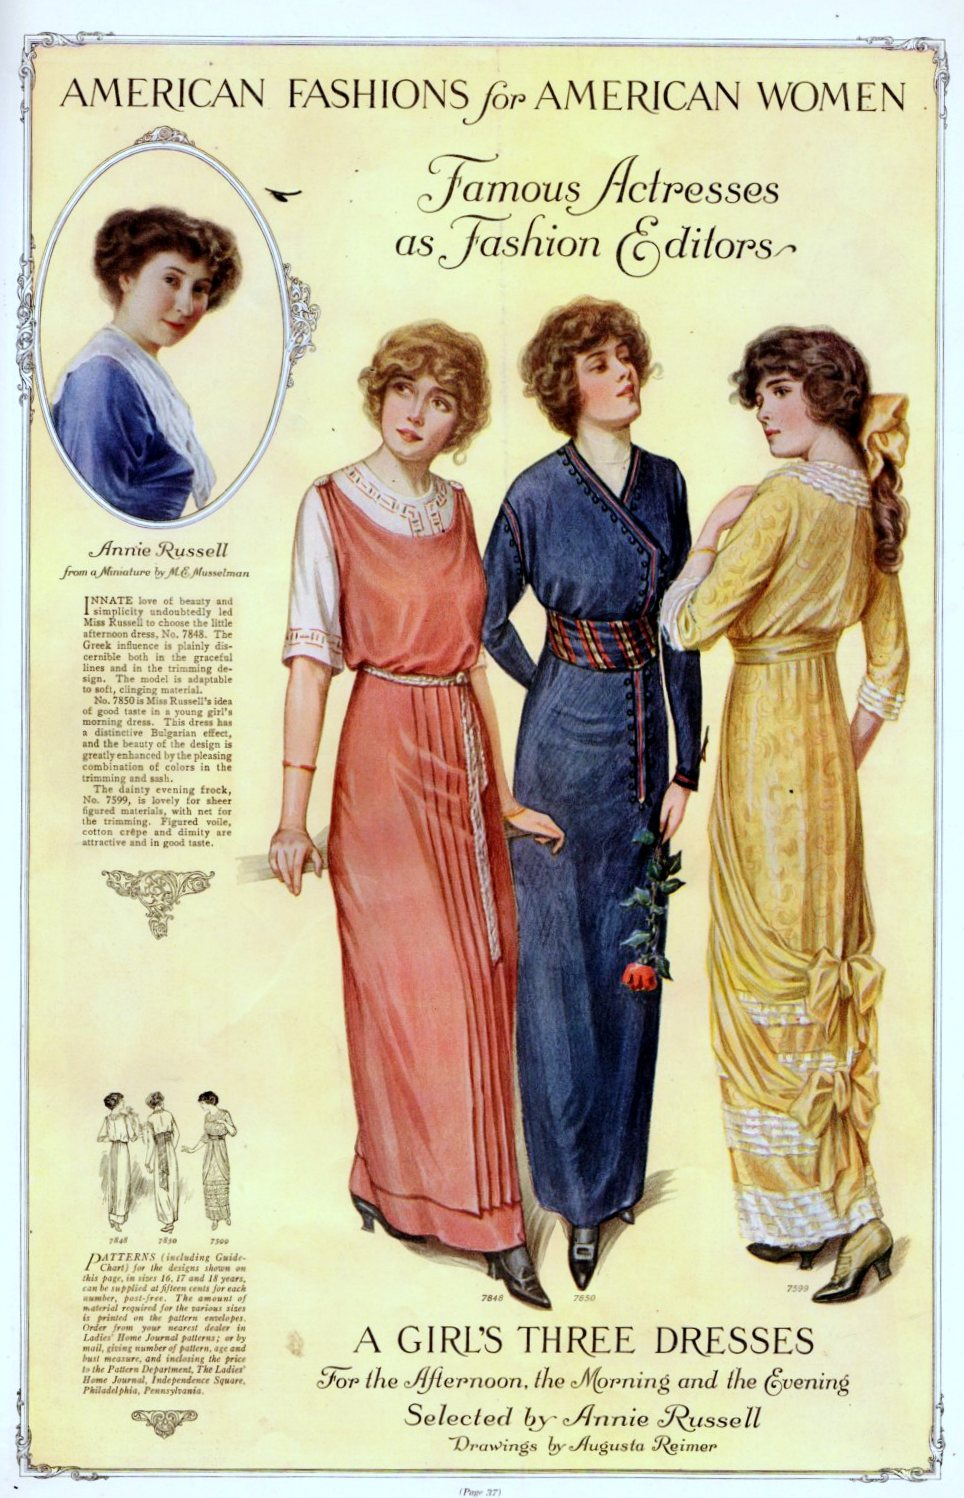 Fashion from 1913 as selected by Annie Russell